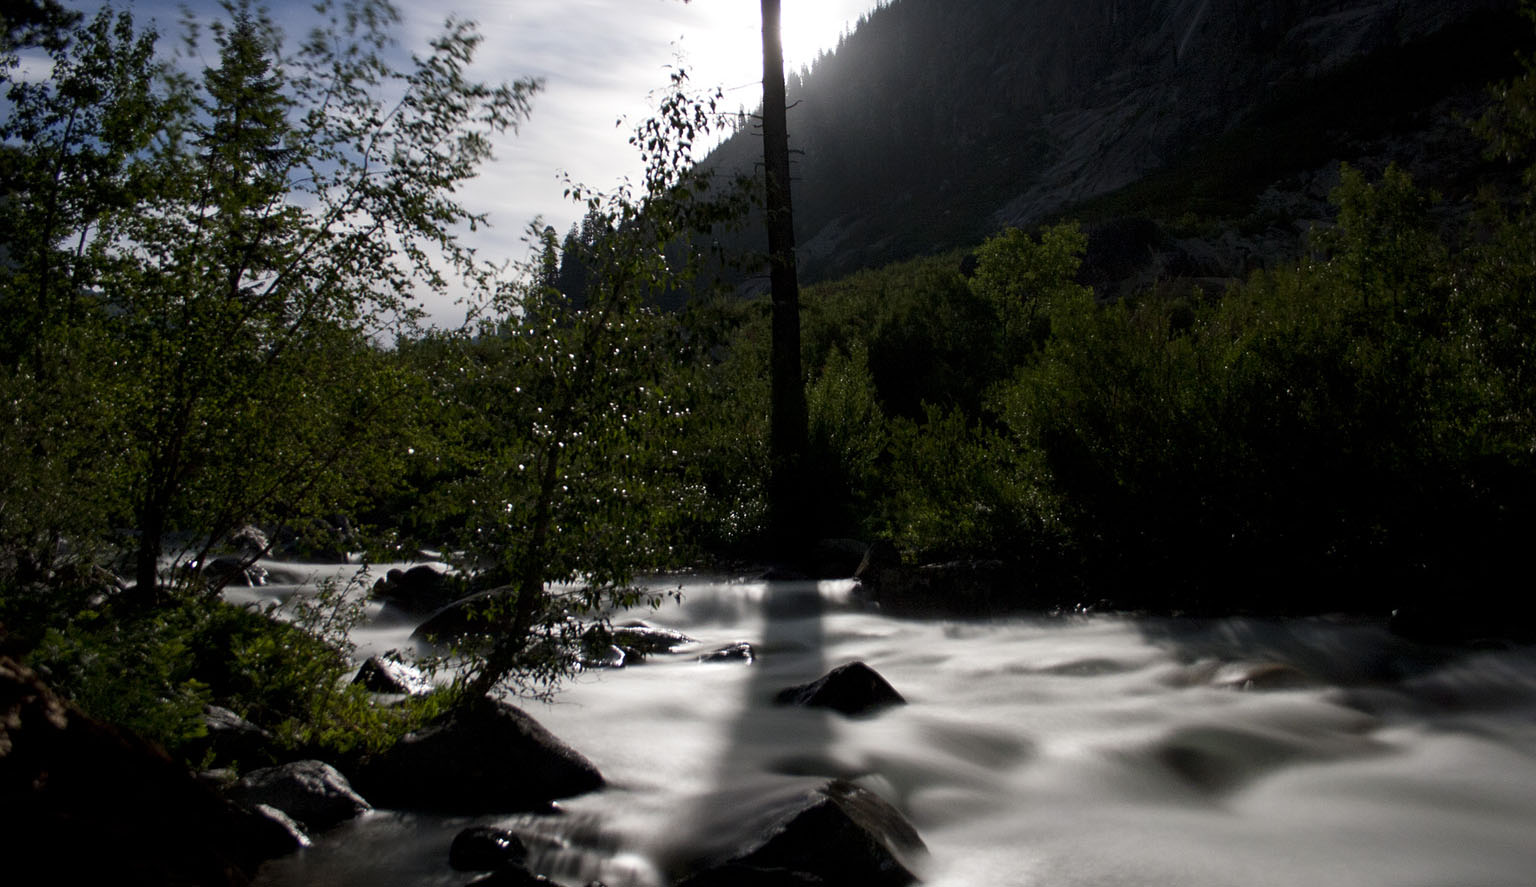 Bubbs Creek by moonlight